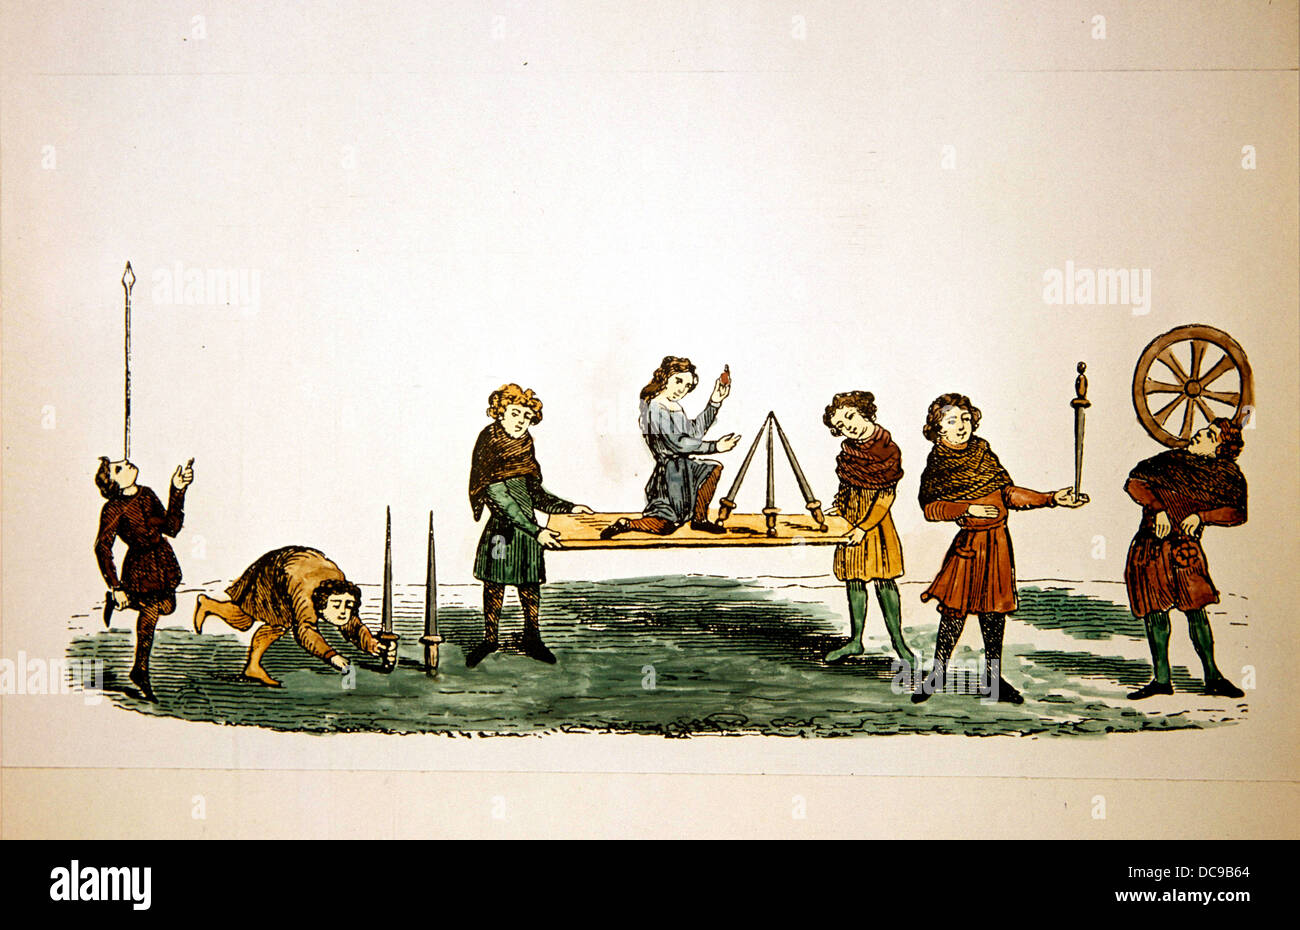 Medieval period. Feats in Balancing. English Manuscript. 13th century. Entertainers. - Stock Image